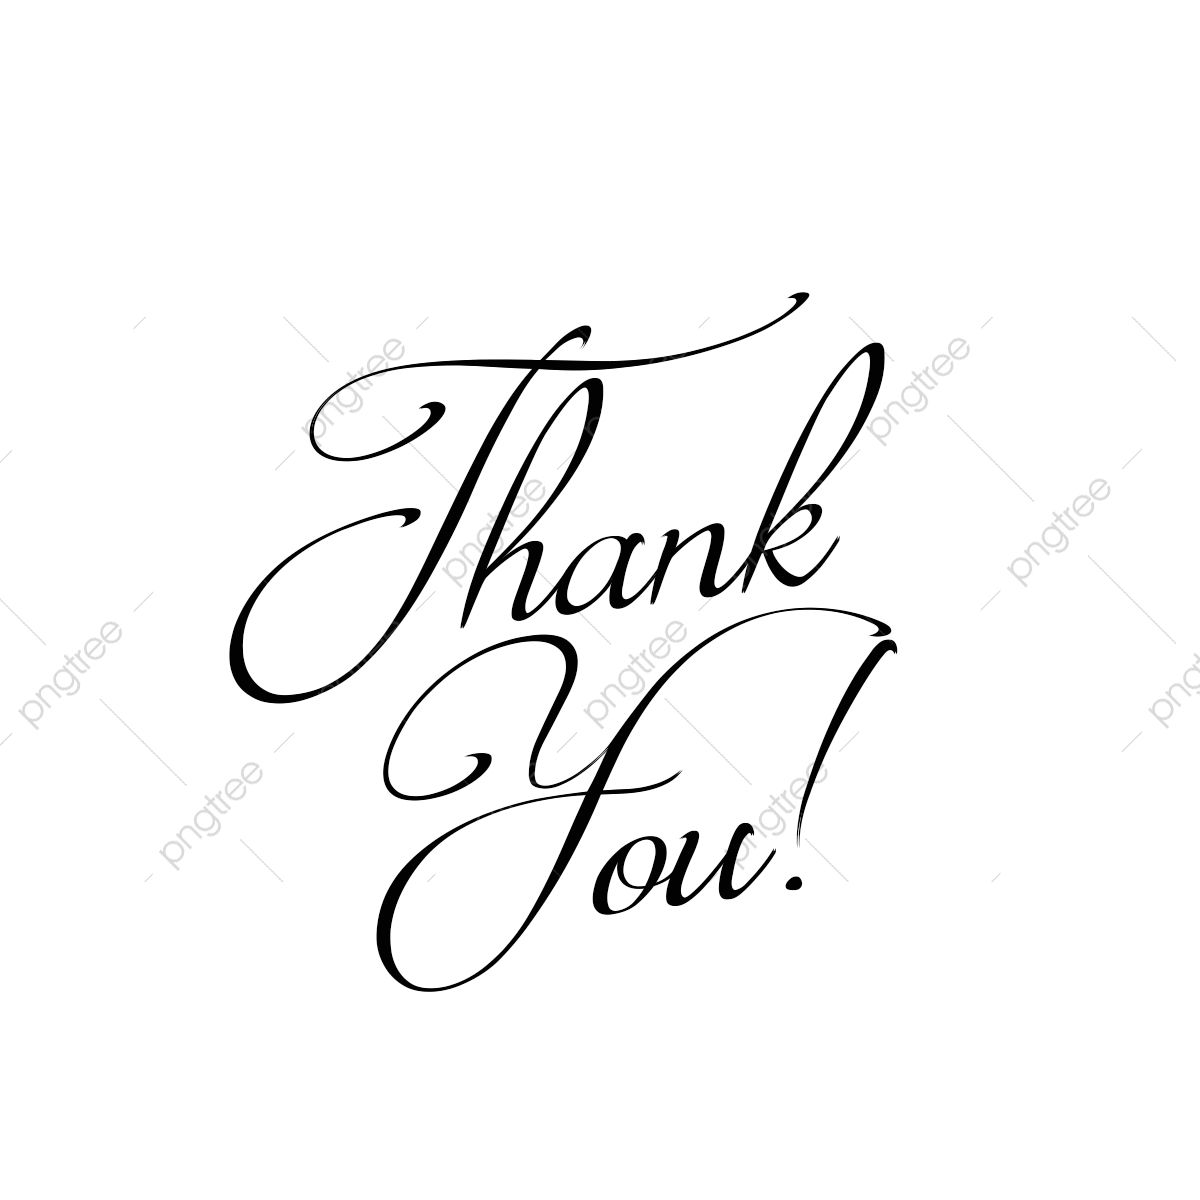 Thank You Png Thank You Text Png Png Thank You Thank You Text Psd Png Transparent Clipart Image And Psd File For Free Download Png Png Text Clip Art